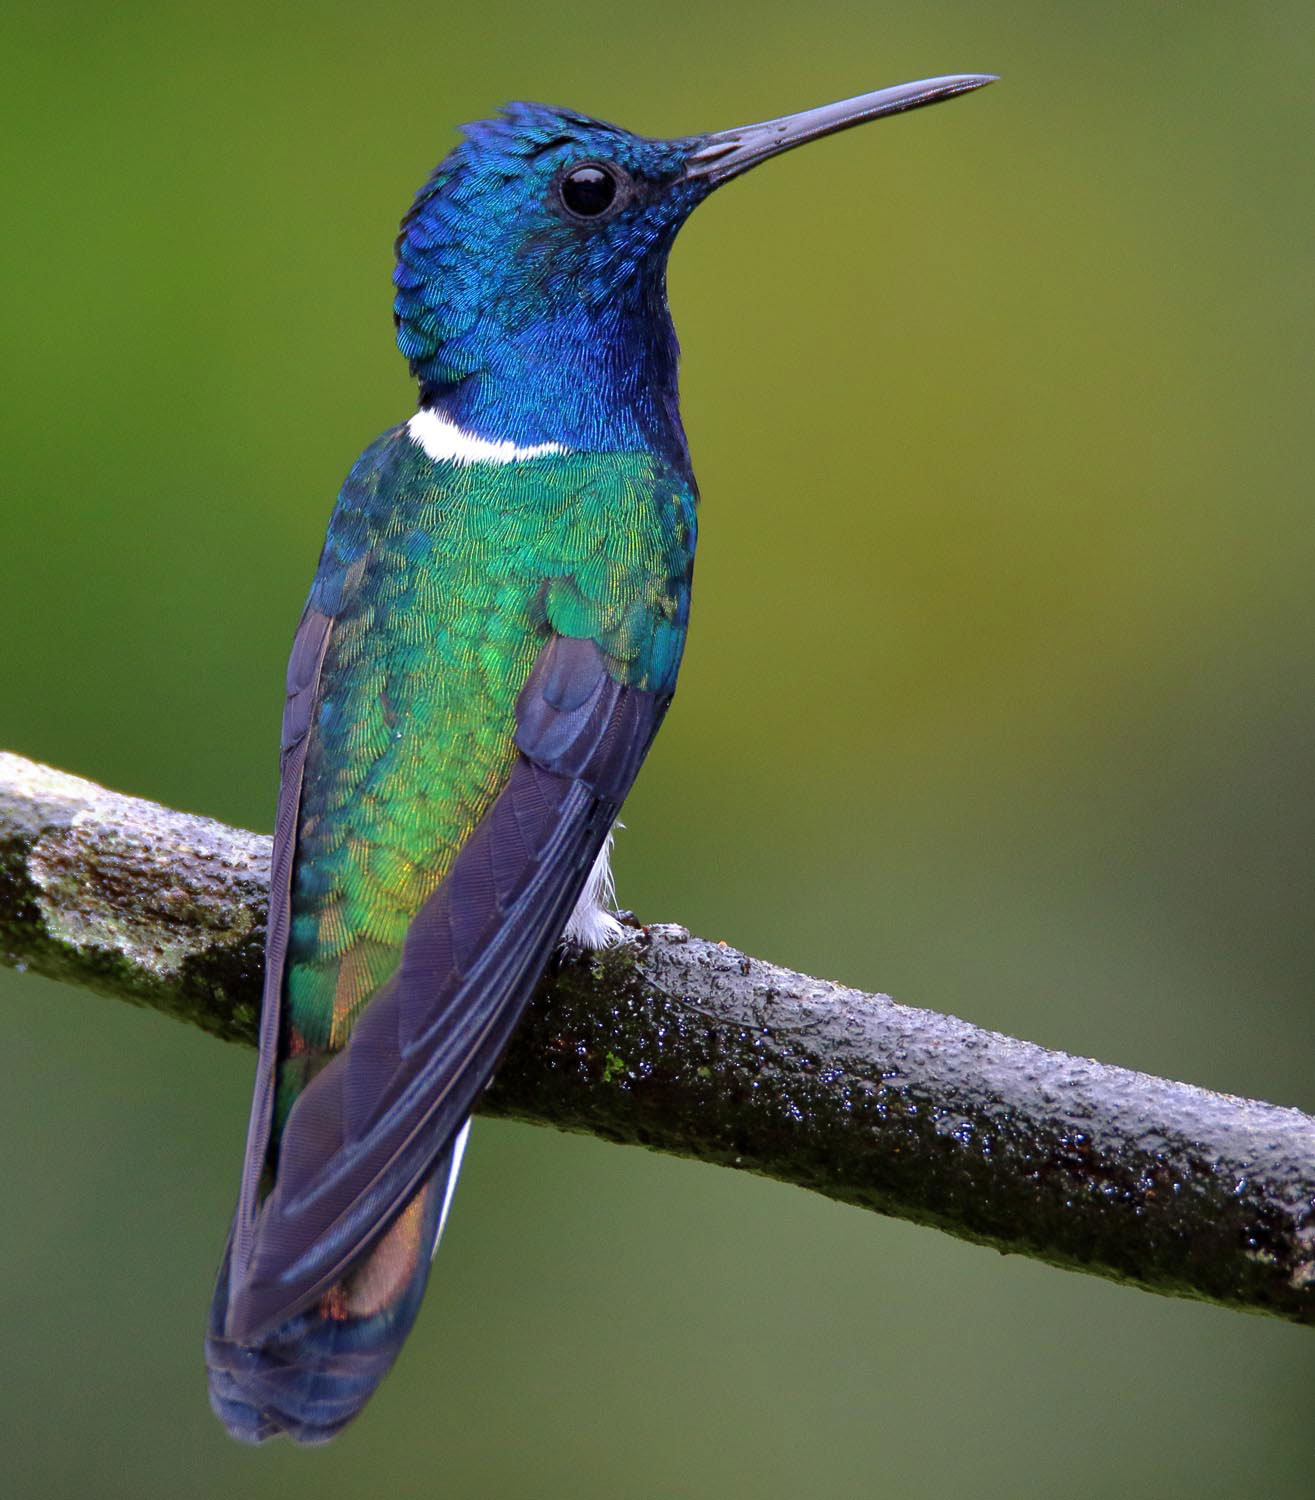 Trinidad's diverse bird life — like this white-necked jacobin — is famed among birdwatchers worldwide. Photograph by Paul Wittet/Shutterstock.com